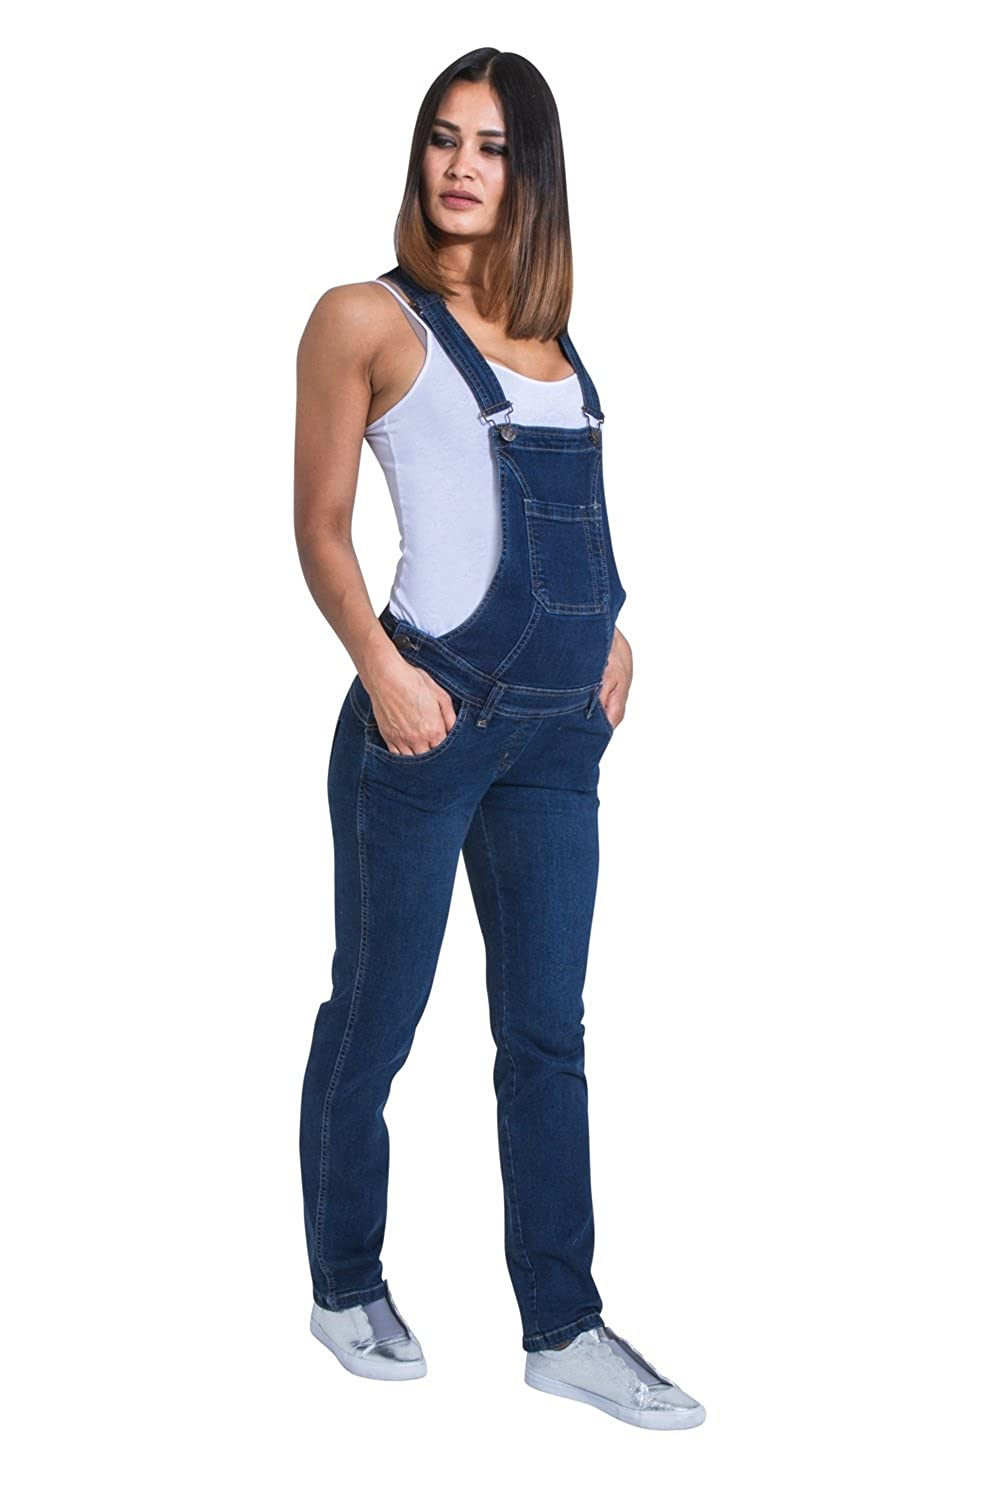 G8 One Maternity Bib Overalls Darkwash Denim Pregnancy Jean